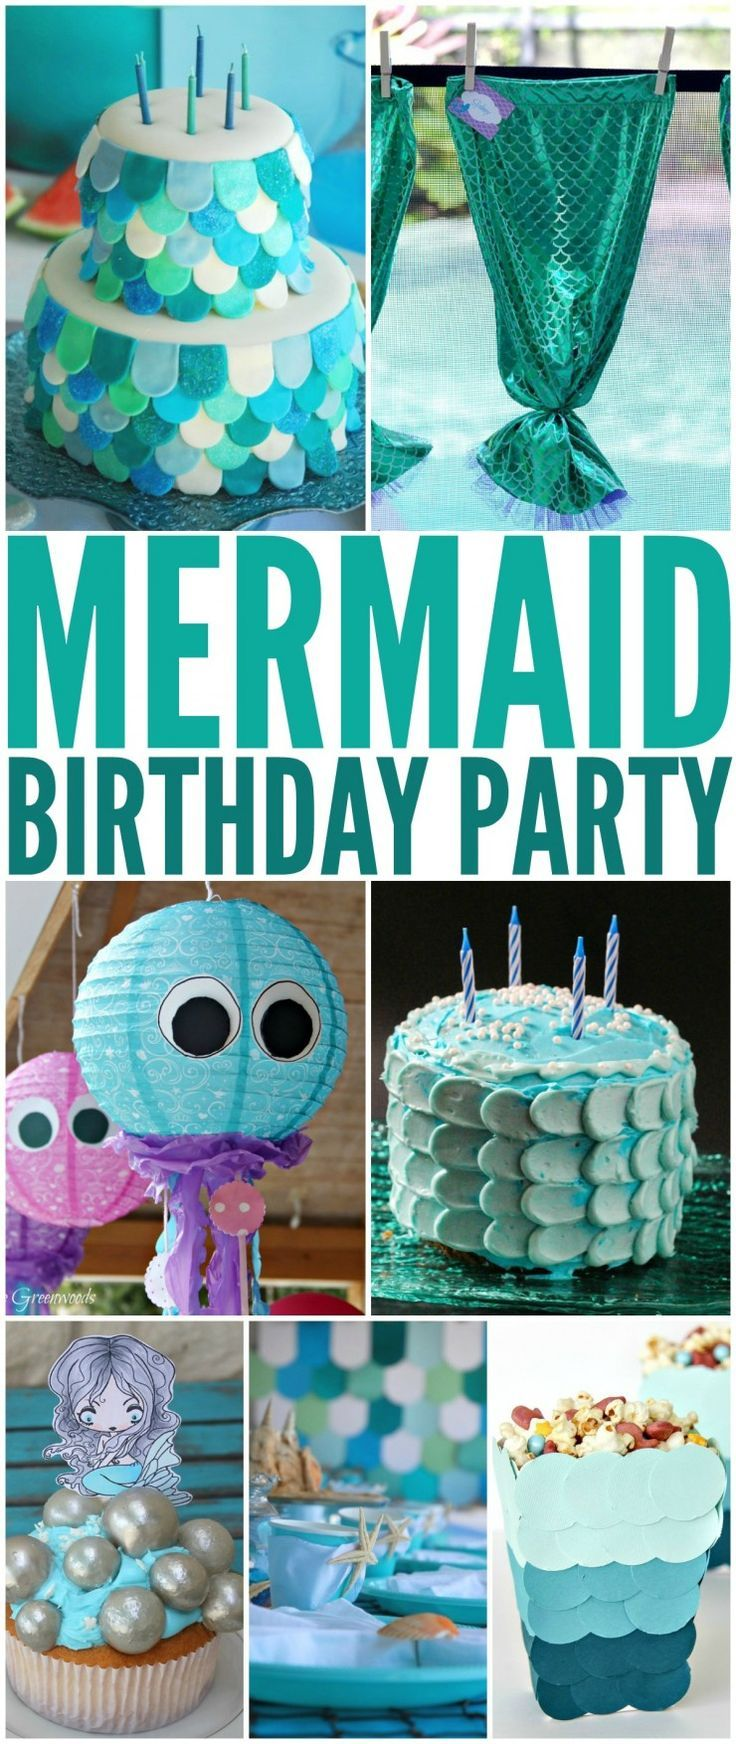 17 best ideas about birthday party planner on pinterest for 15th birthday party decoration ideas